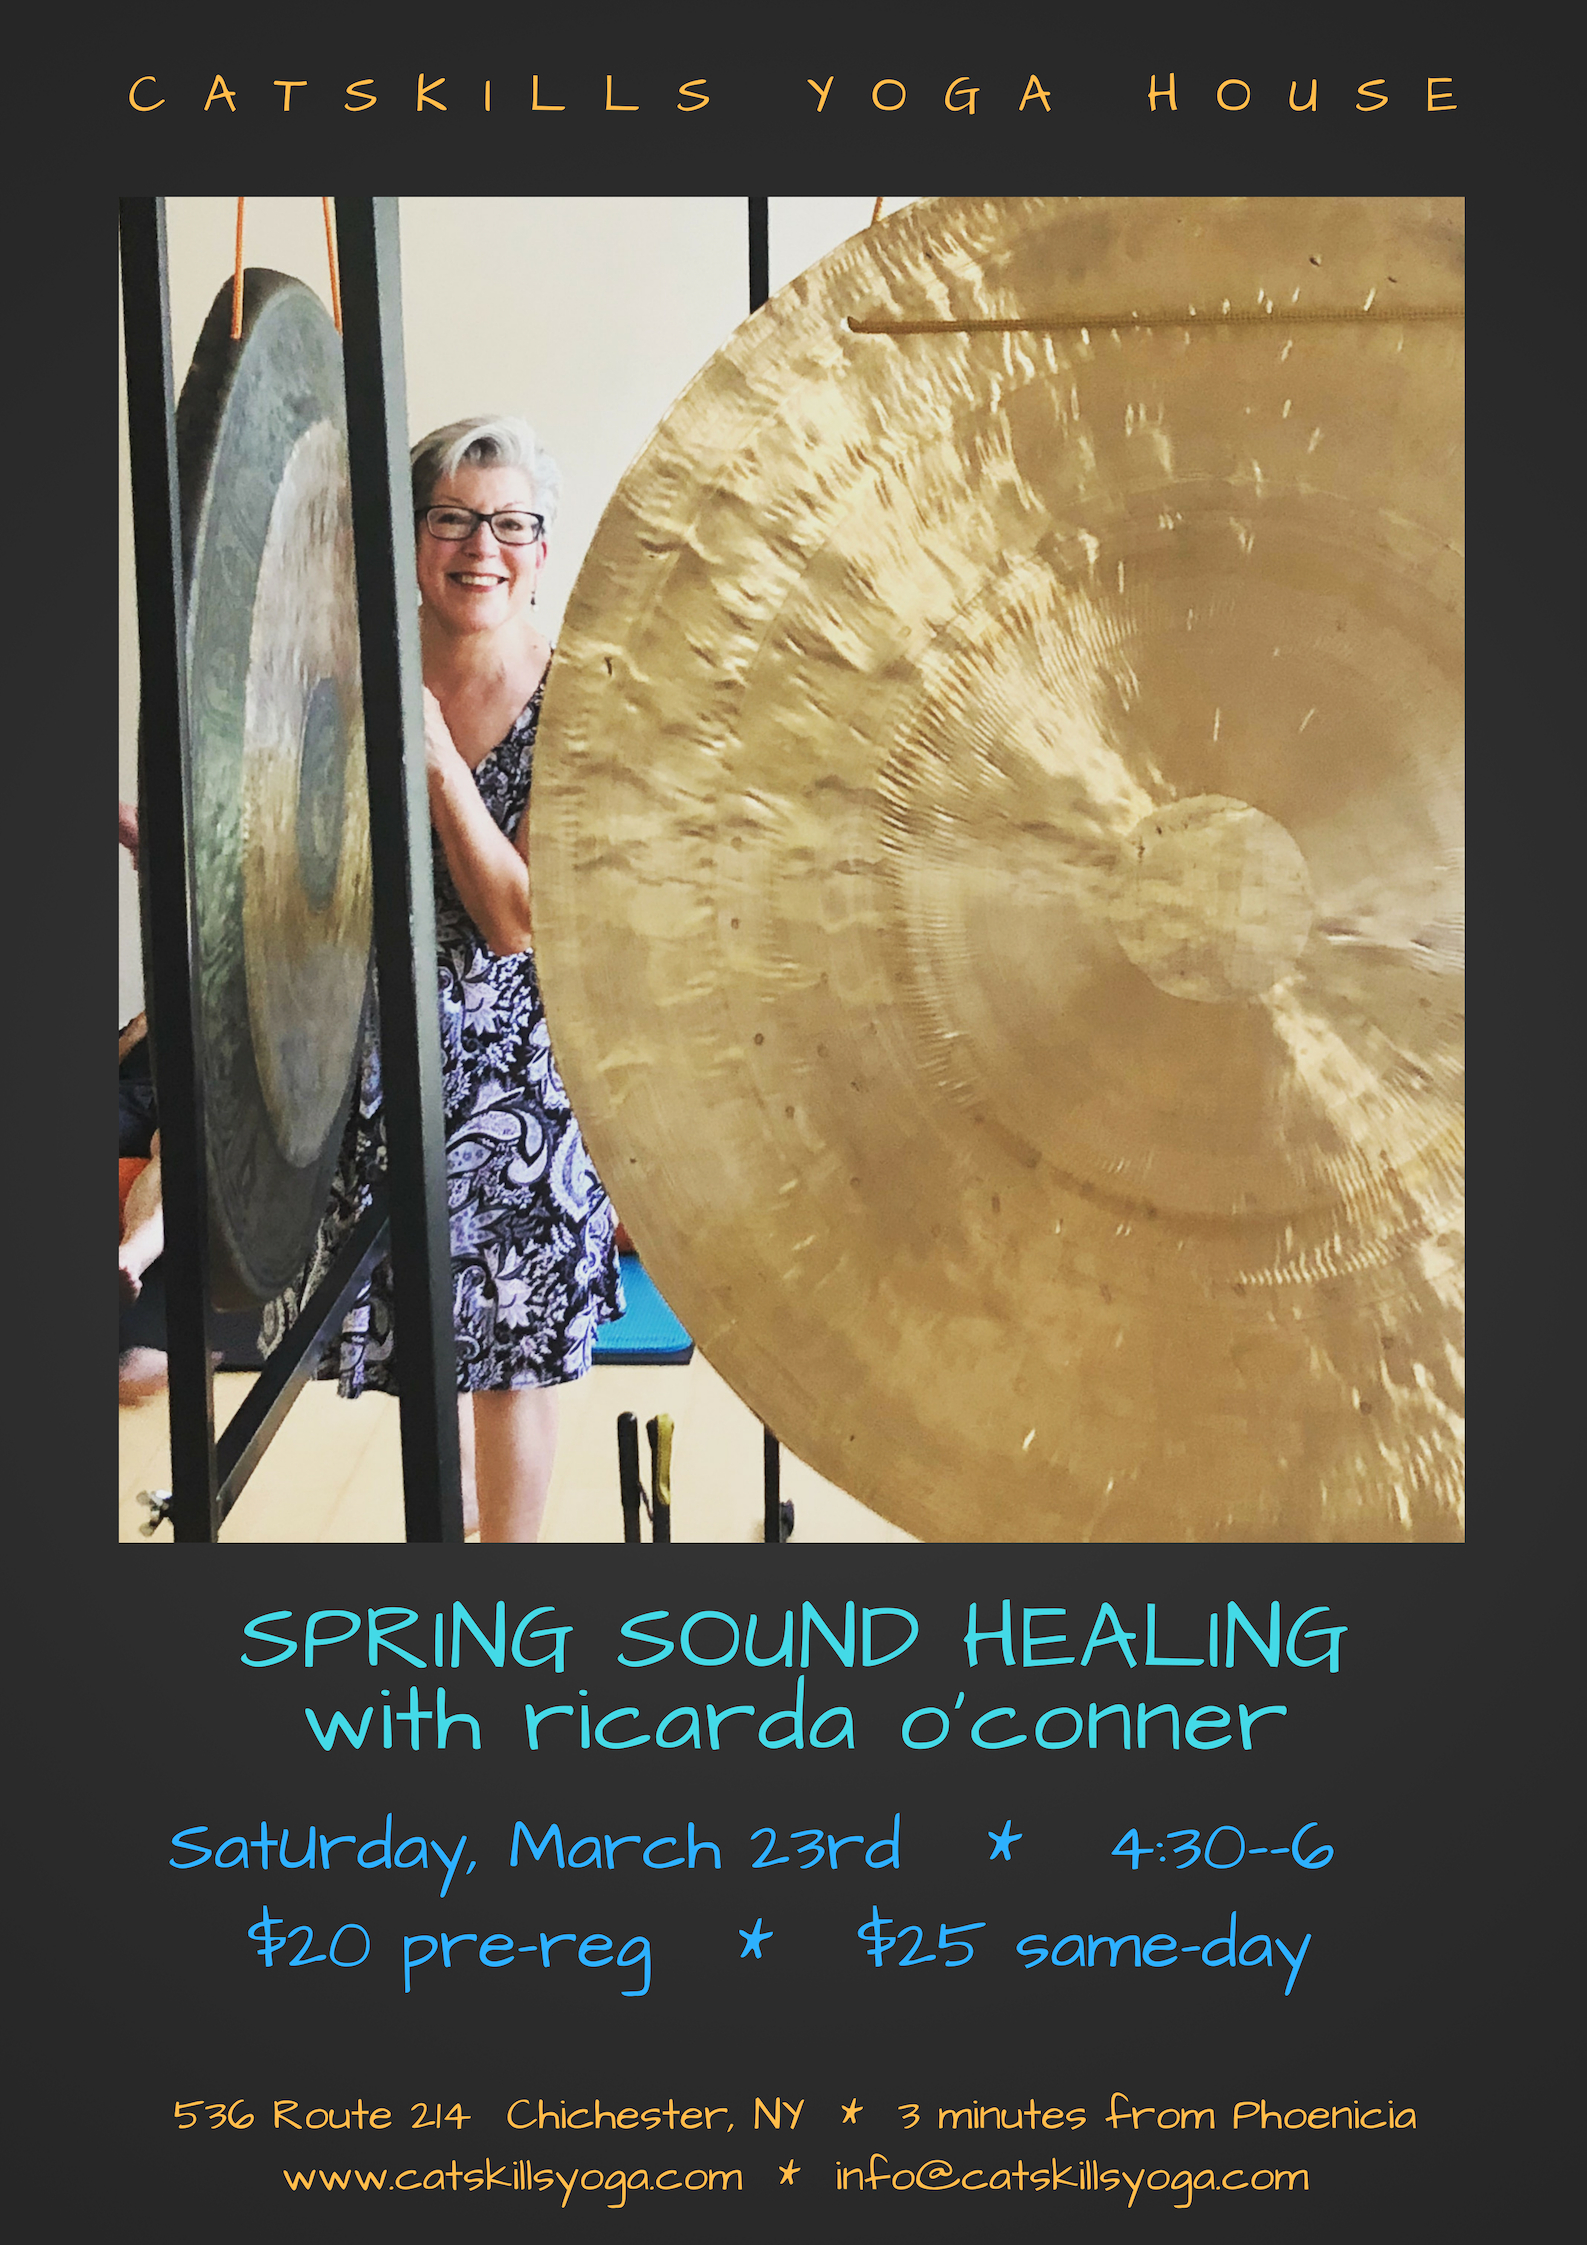 After a long winter, I invite you to renew, refresh, and revitalize your whole system and to welcome in what wants to bloom and expand within you. Healer, teacher, and musician Ricarda O'Conner will guide you on a deeply restoring journey of sound to reset and recalibrate your nervous system. A gong bath meditation restores the harmonic field of the body. The sound waves emanating from the gongs come in through your ears, but also move through your body, gently guiding you into deep relaxation. The gongs rebalance the body, mind and spirit, raising your vibration and returning you to your essential resonance.  For this event you will lie down on a yoga mat, close your eyes, and simply let the sound wash over you. Please bring a yoga mat and a pillow and/or a blanket and eye covering if you wish. The more comfortable your body can be, the more beneficial the experience. For more about Ricarda, please see  www.ricardaoconner.com.   Register by sending an inquiry to info@catskillsyoga.com or call 802-578-7869.  $20 exchange pre-registration or $25 same day